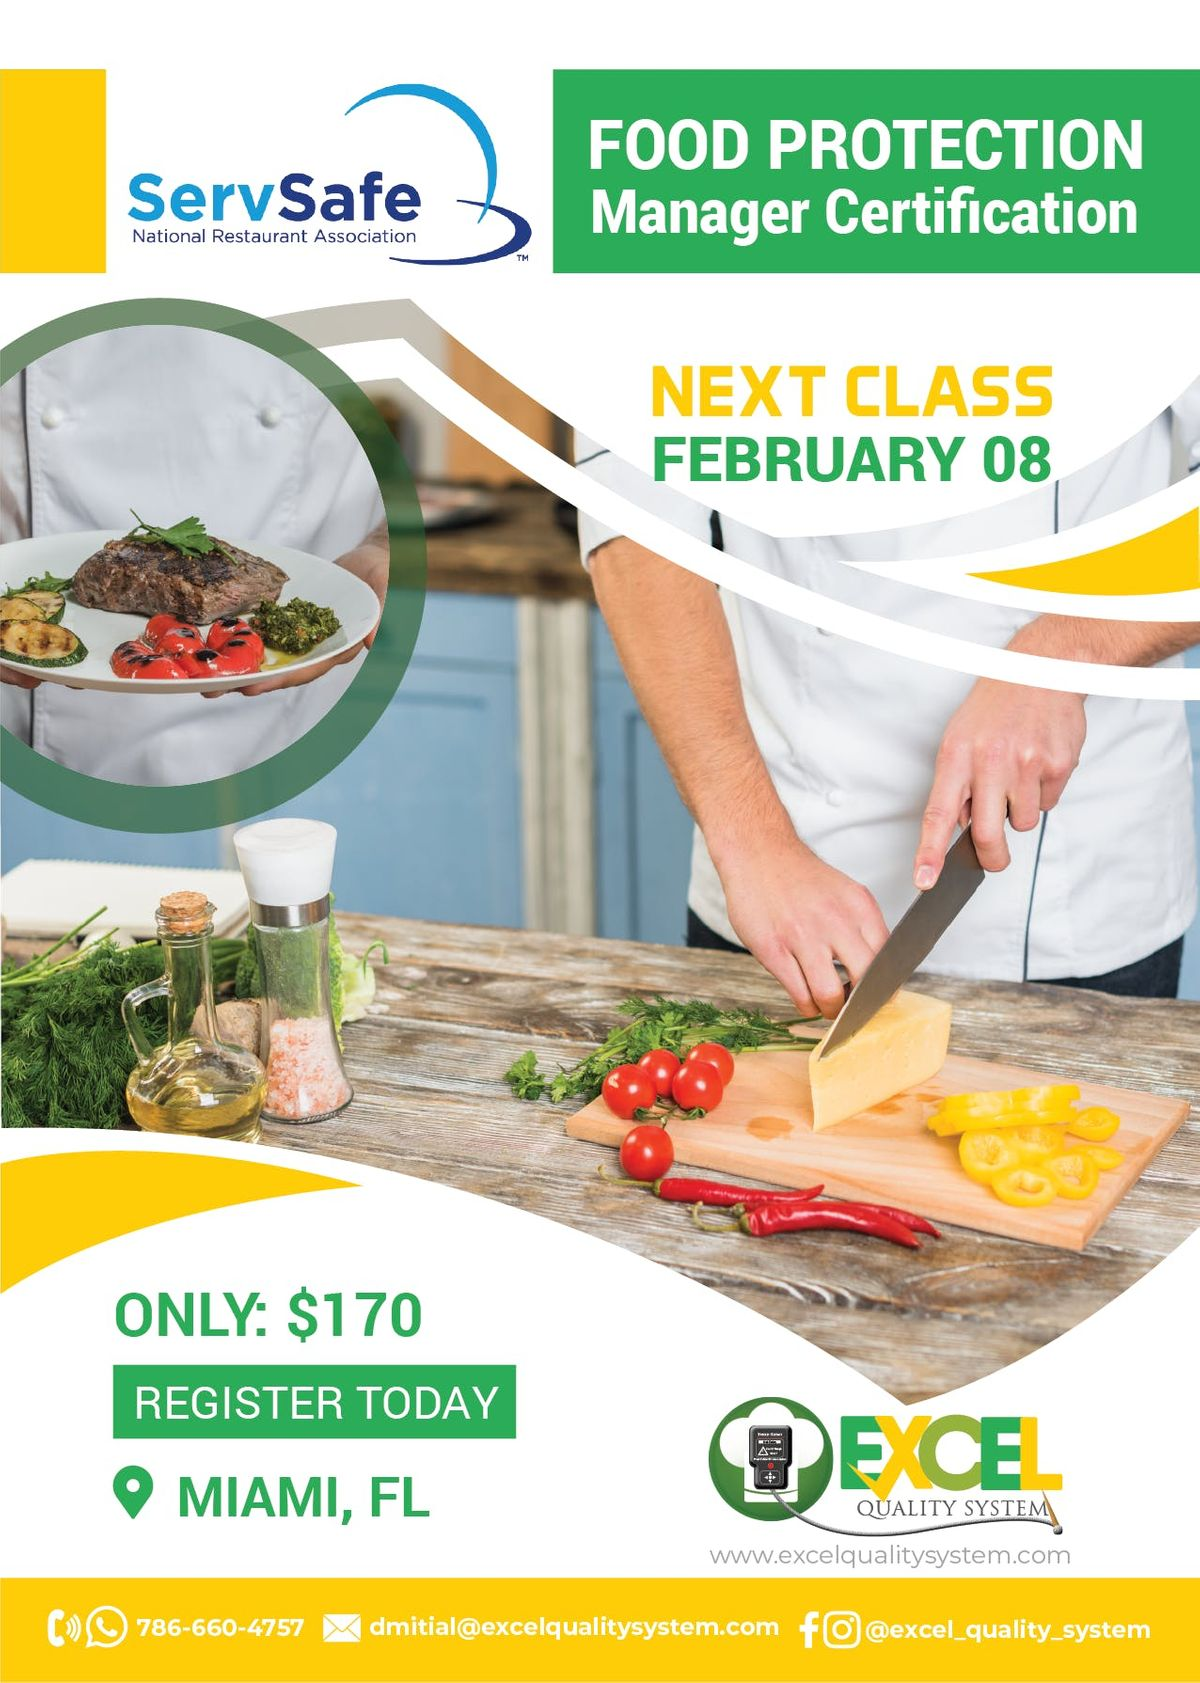 Food Managers Certification (ServSafe) Class & Exam.